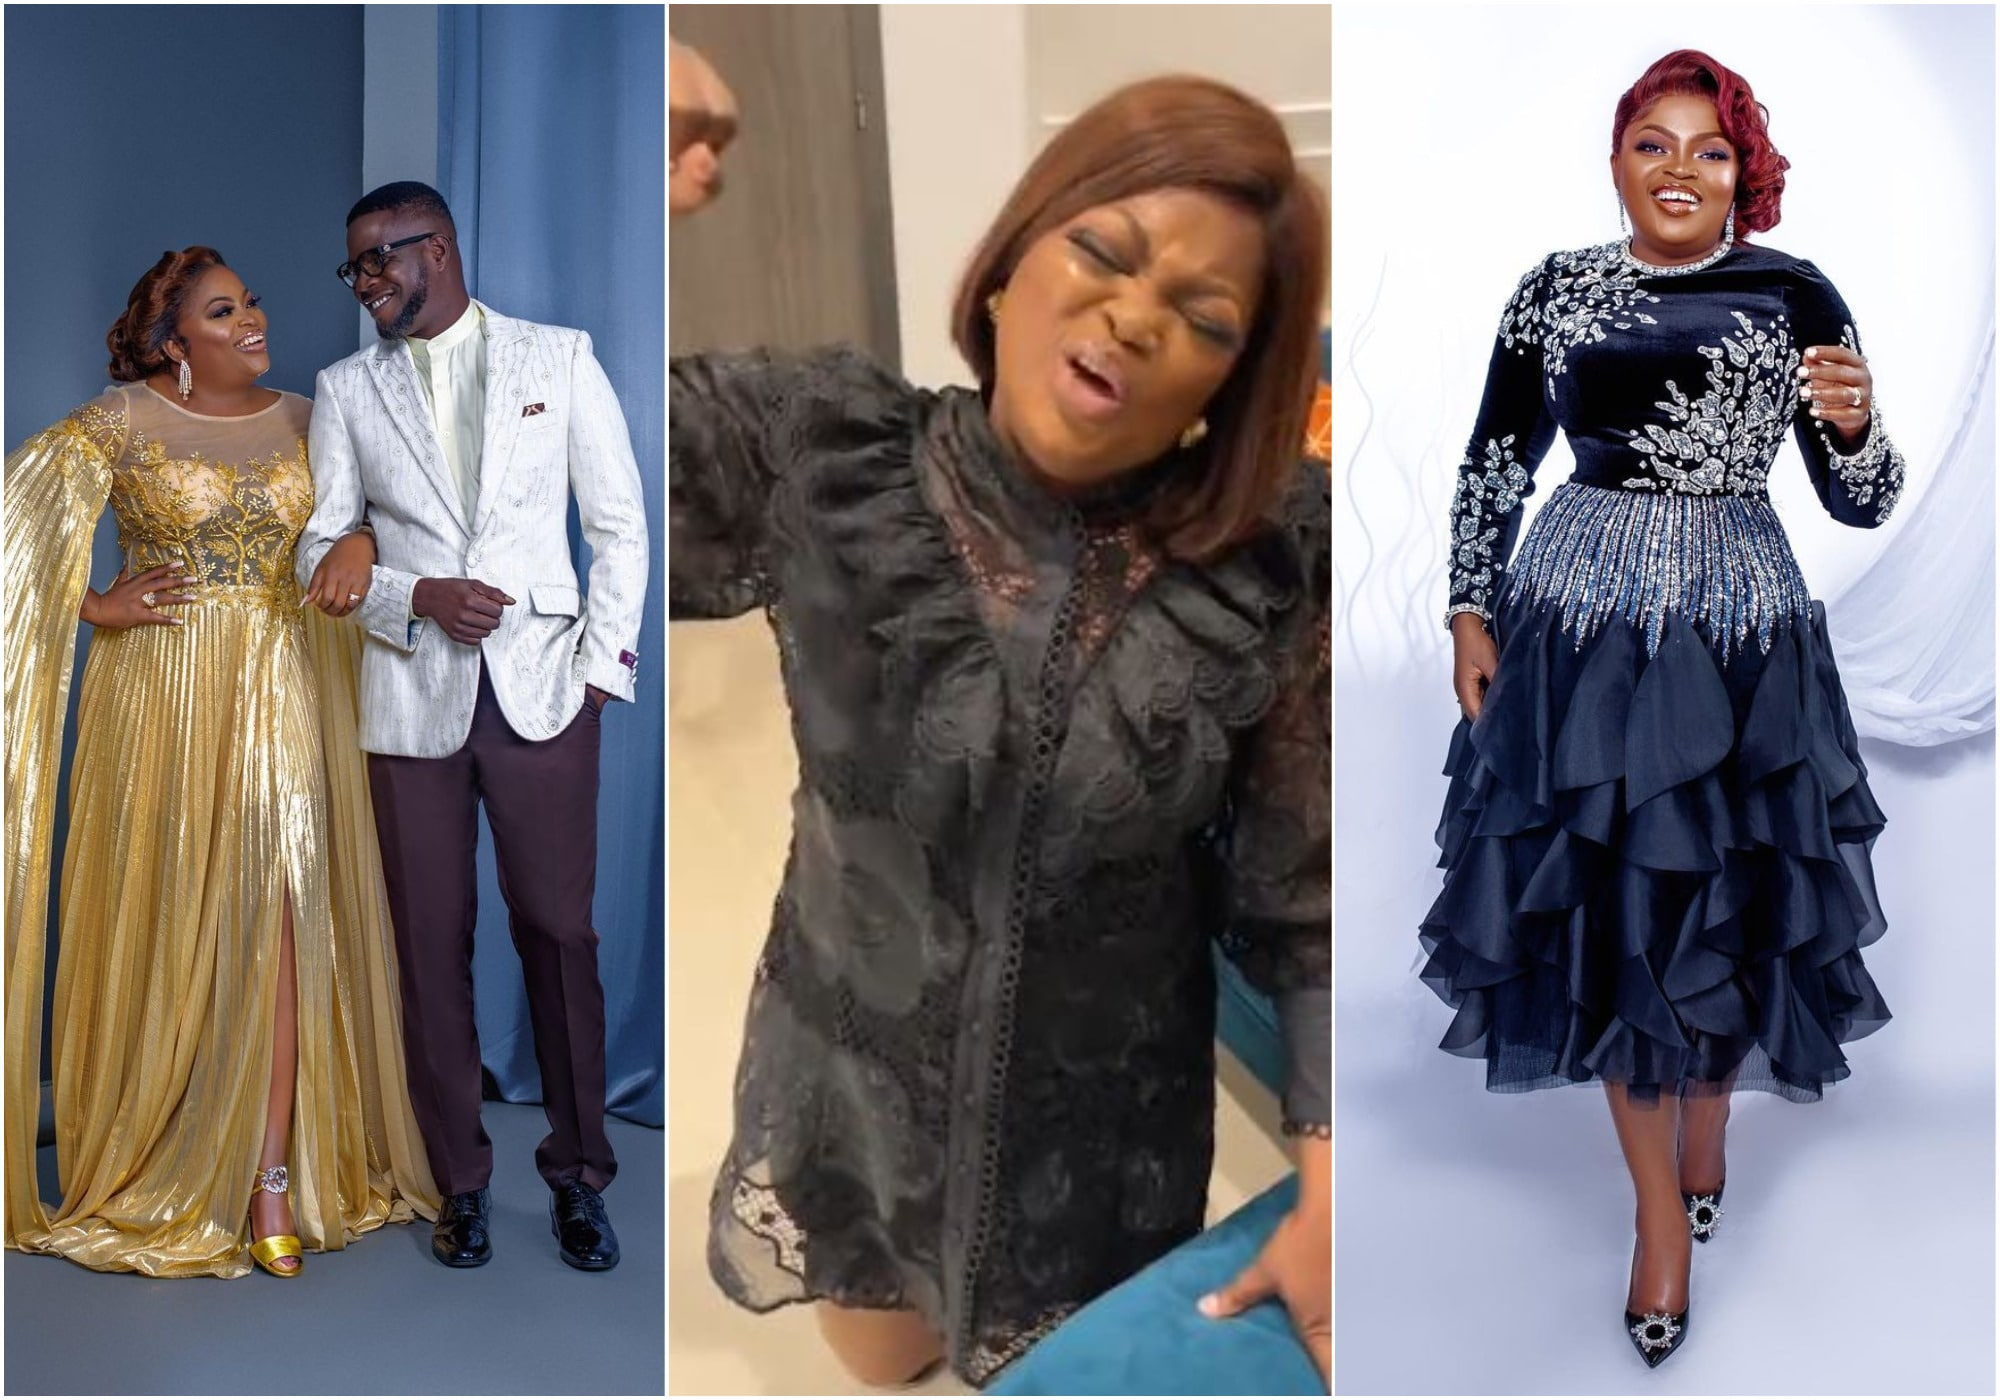 Funke Akindele is a lucky woman as she receives love and cheers from fans and followers who shut down the internet for her sake.